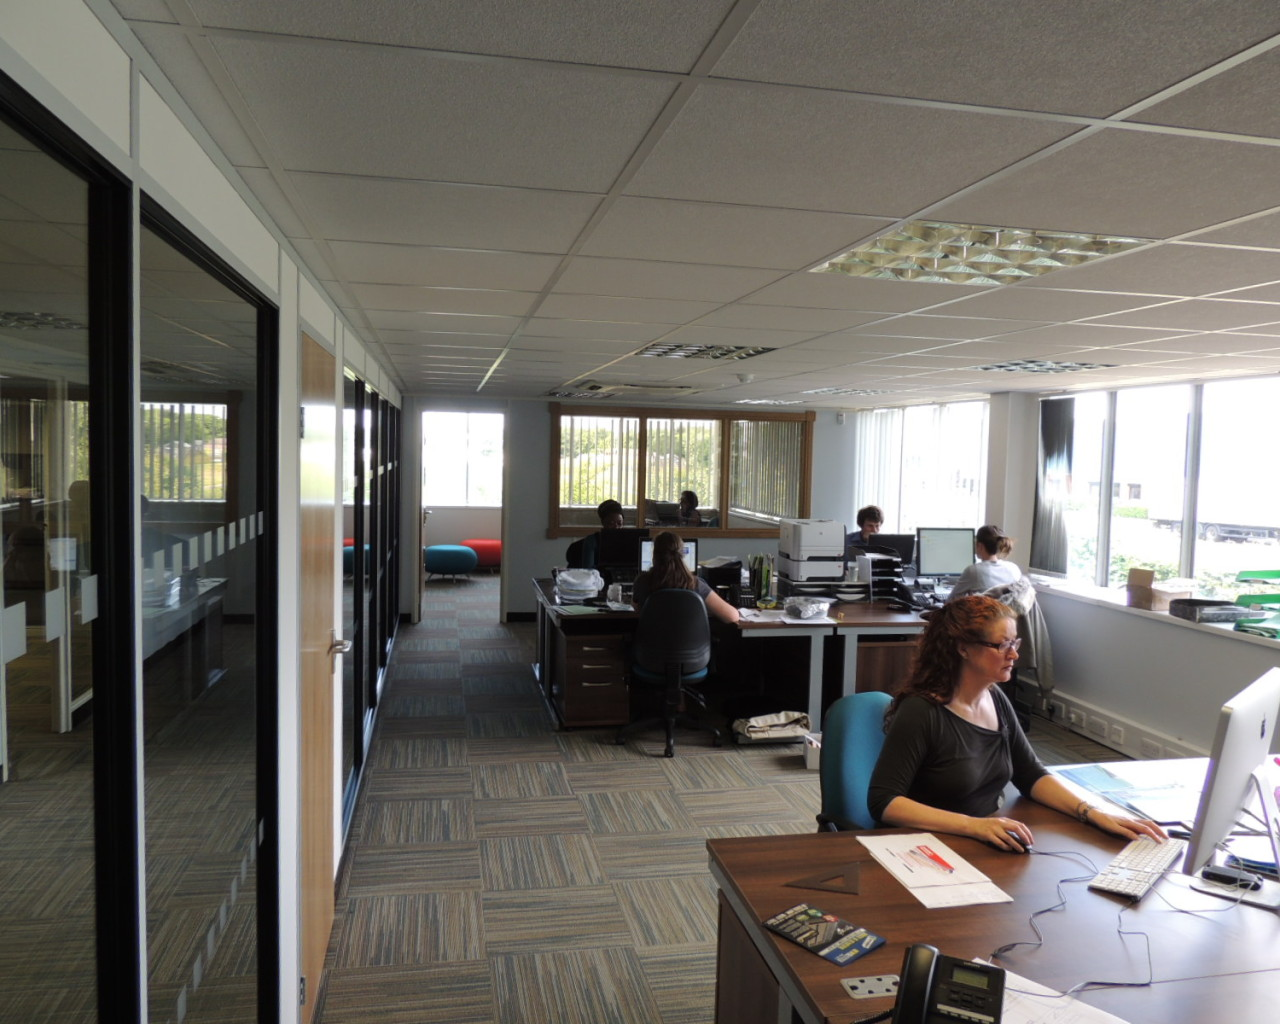 Office refurbishment services Skelmersdale, Wigan, St Helens, Widnes, Runcorn, and Chester